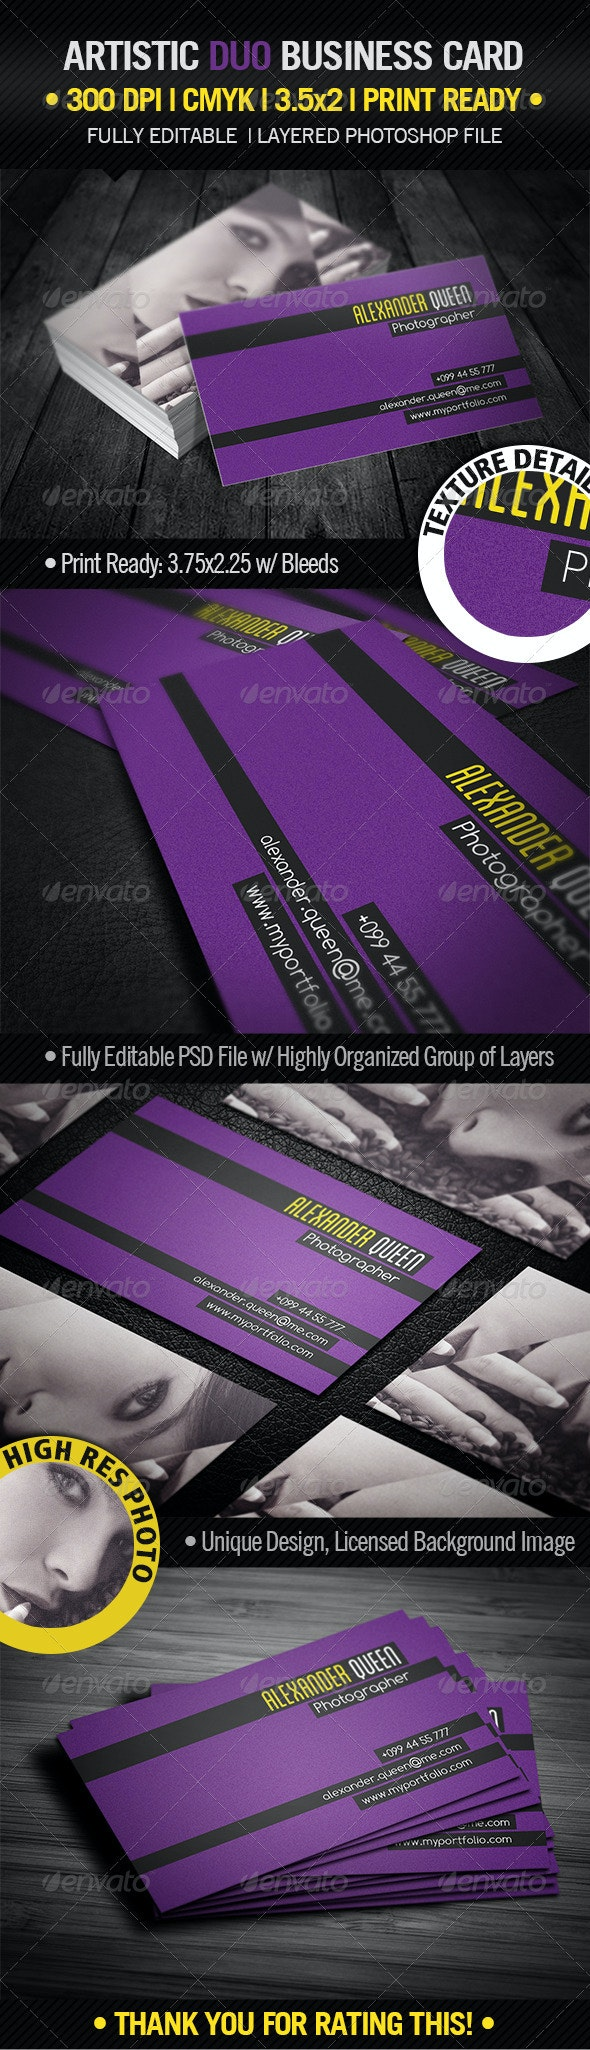 Artistic Duo Business Card - Industry Specific Business Cards